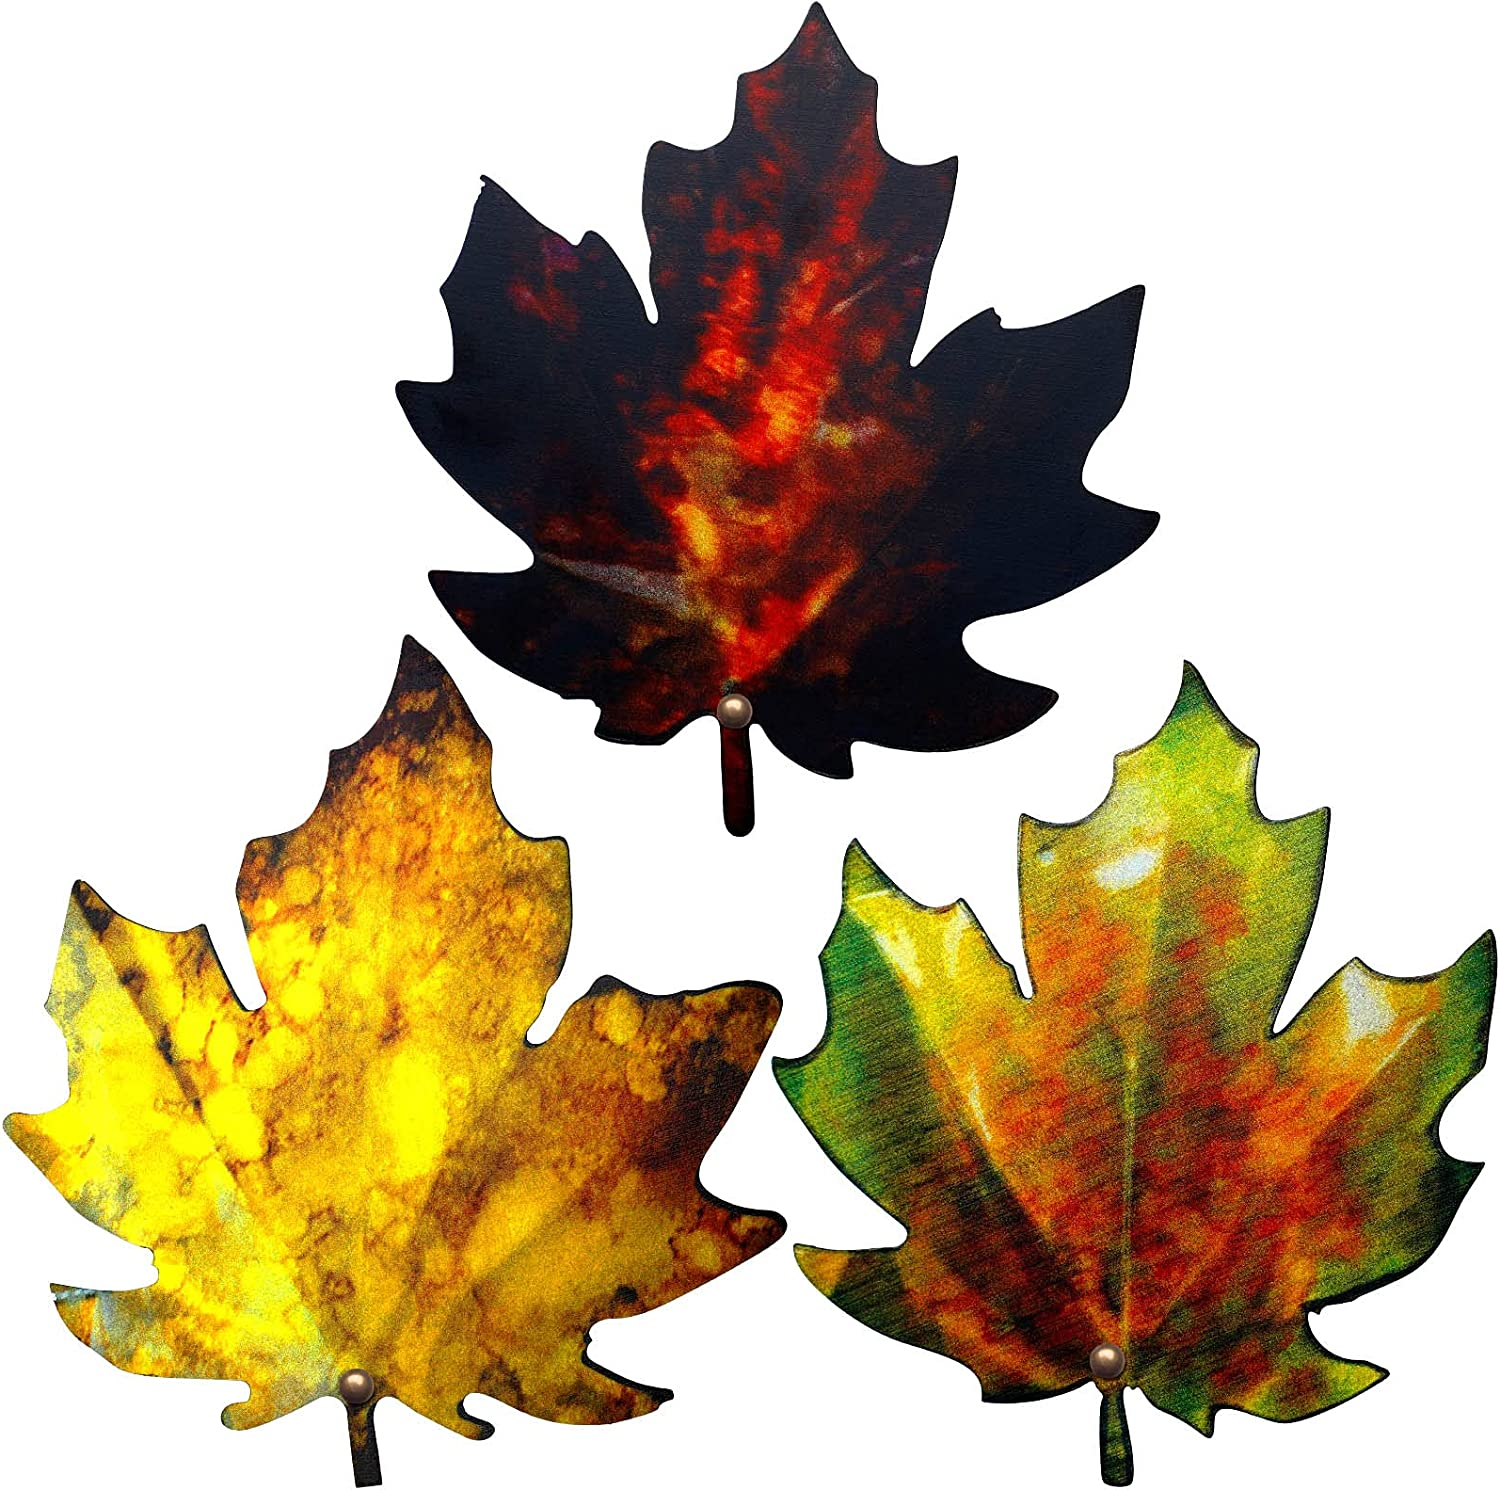 3 Pieces Maple Leaves Metal Wall Decor 5.9 Inch Thanksgiving 3D Leaves Iron Wall Art Rustic Metal Leaves Fall Decor Autumn Metal Sign Hanging Decor for Outdoor Indoor Kitchen Living Room Bedroom